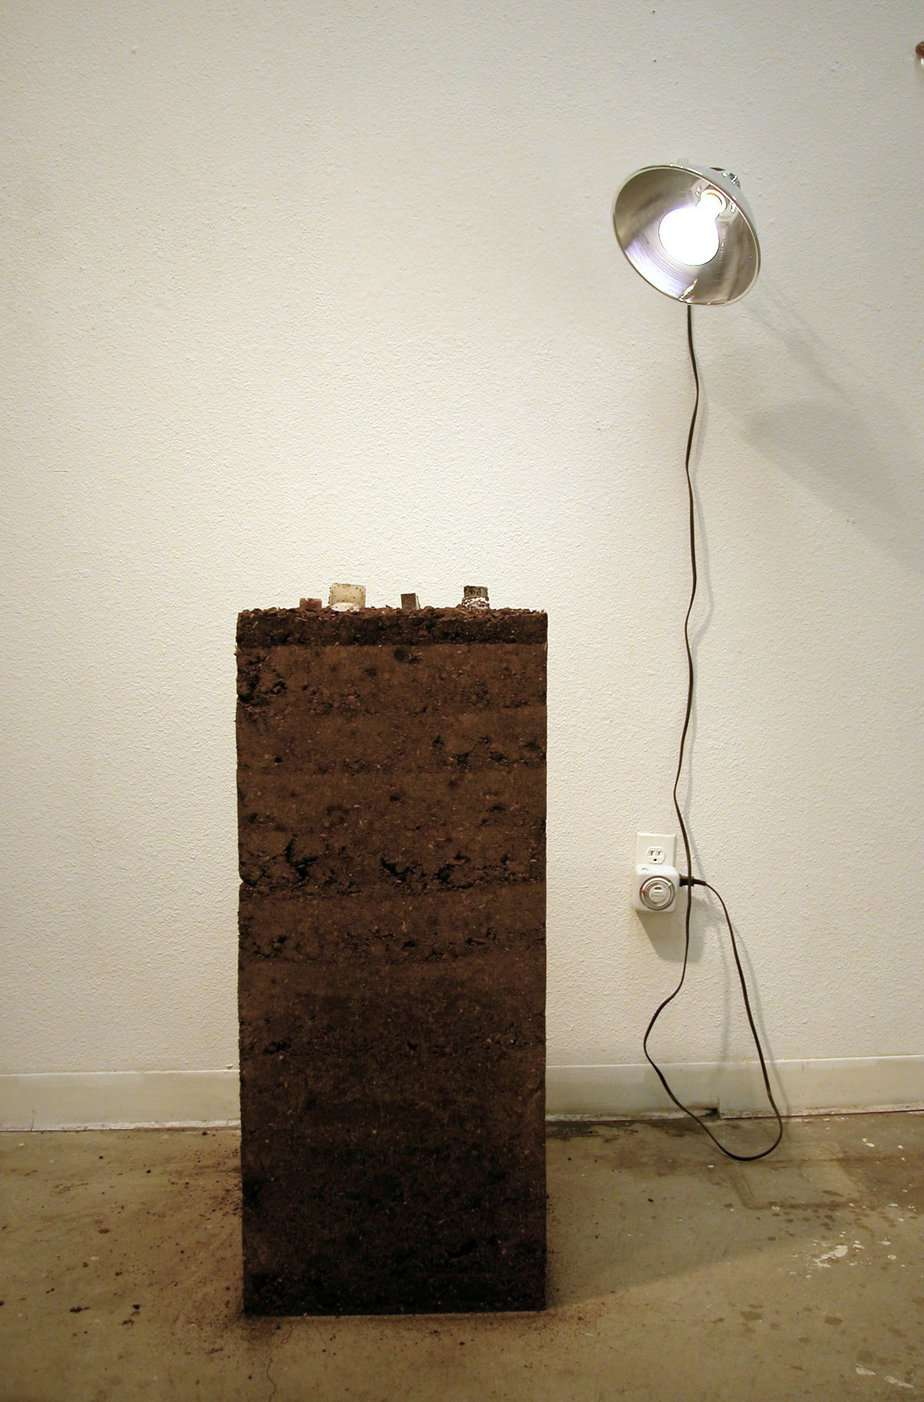 Earth cube, with smaller cubes on top of it, a lamp is on and plugged into the wall.